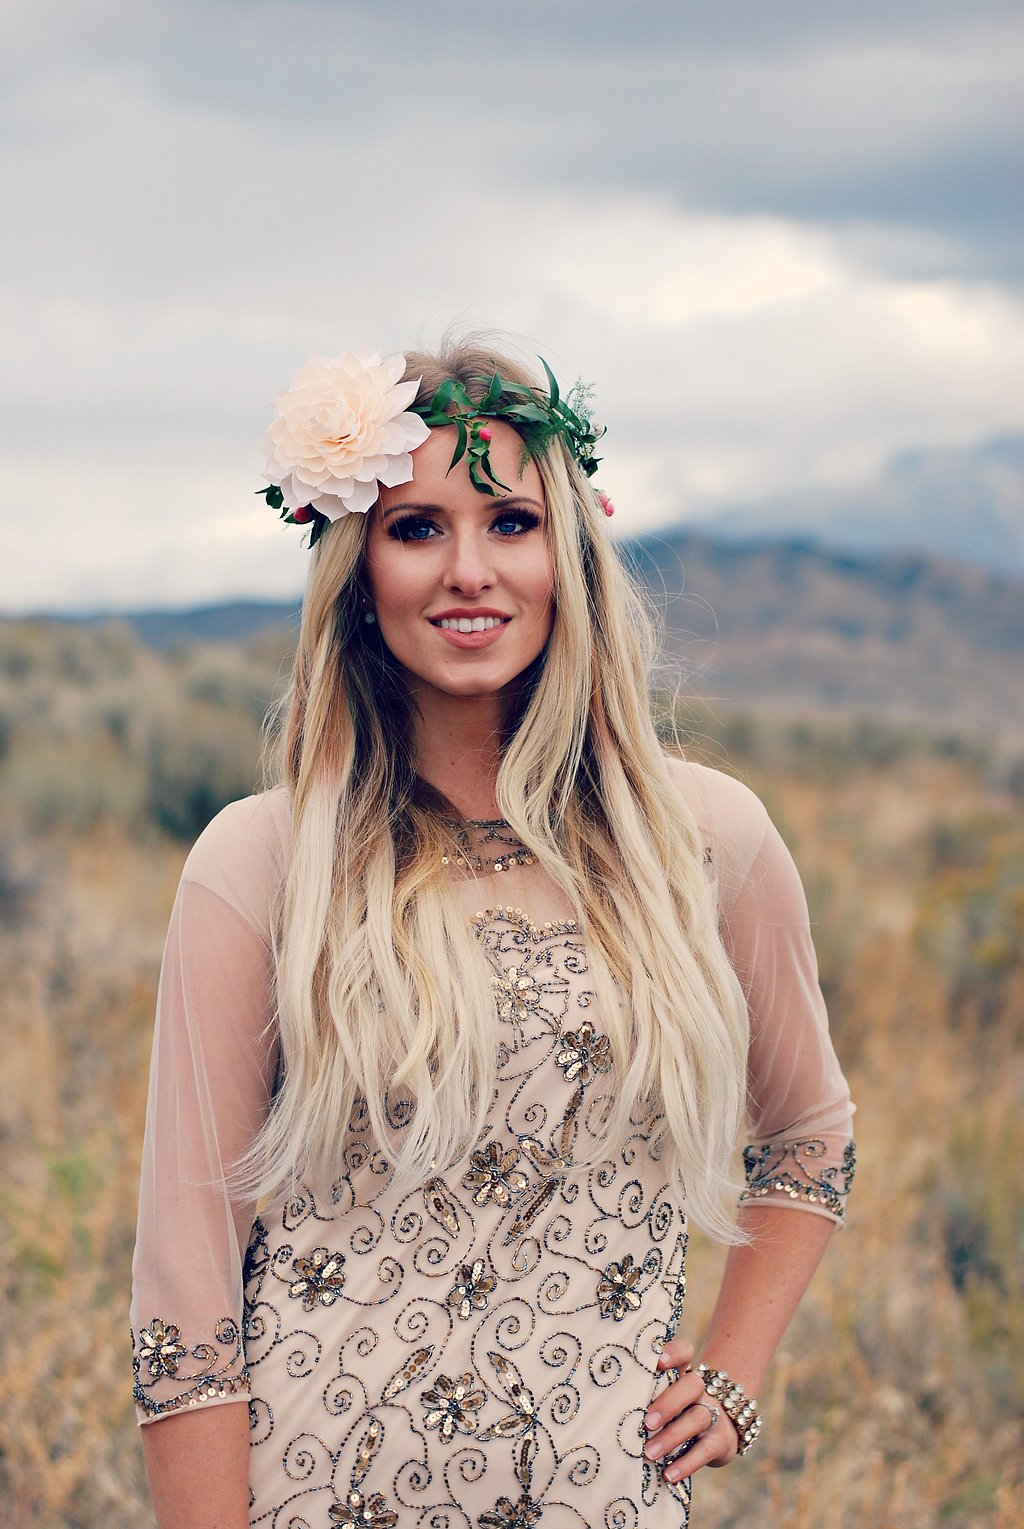 Formal Boho Chic dress and floral crown